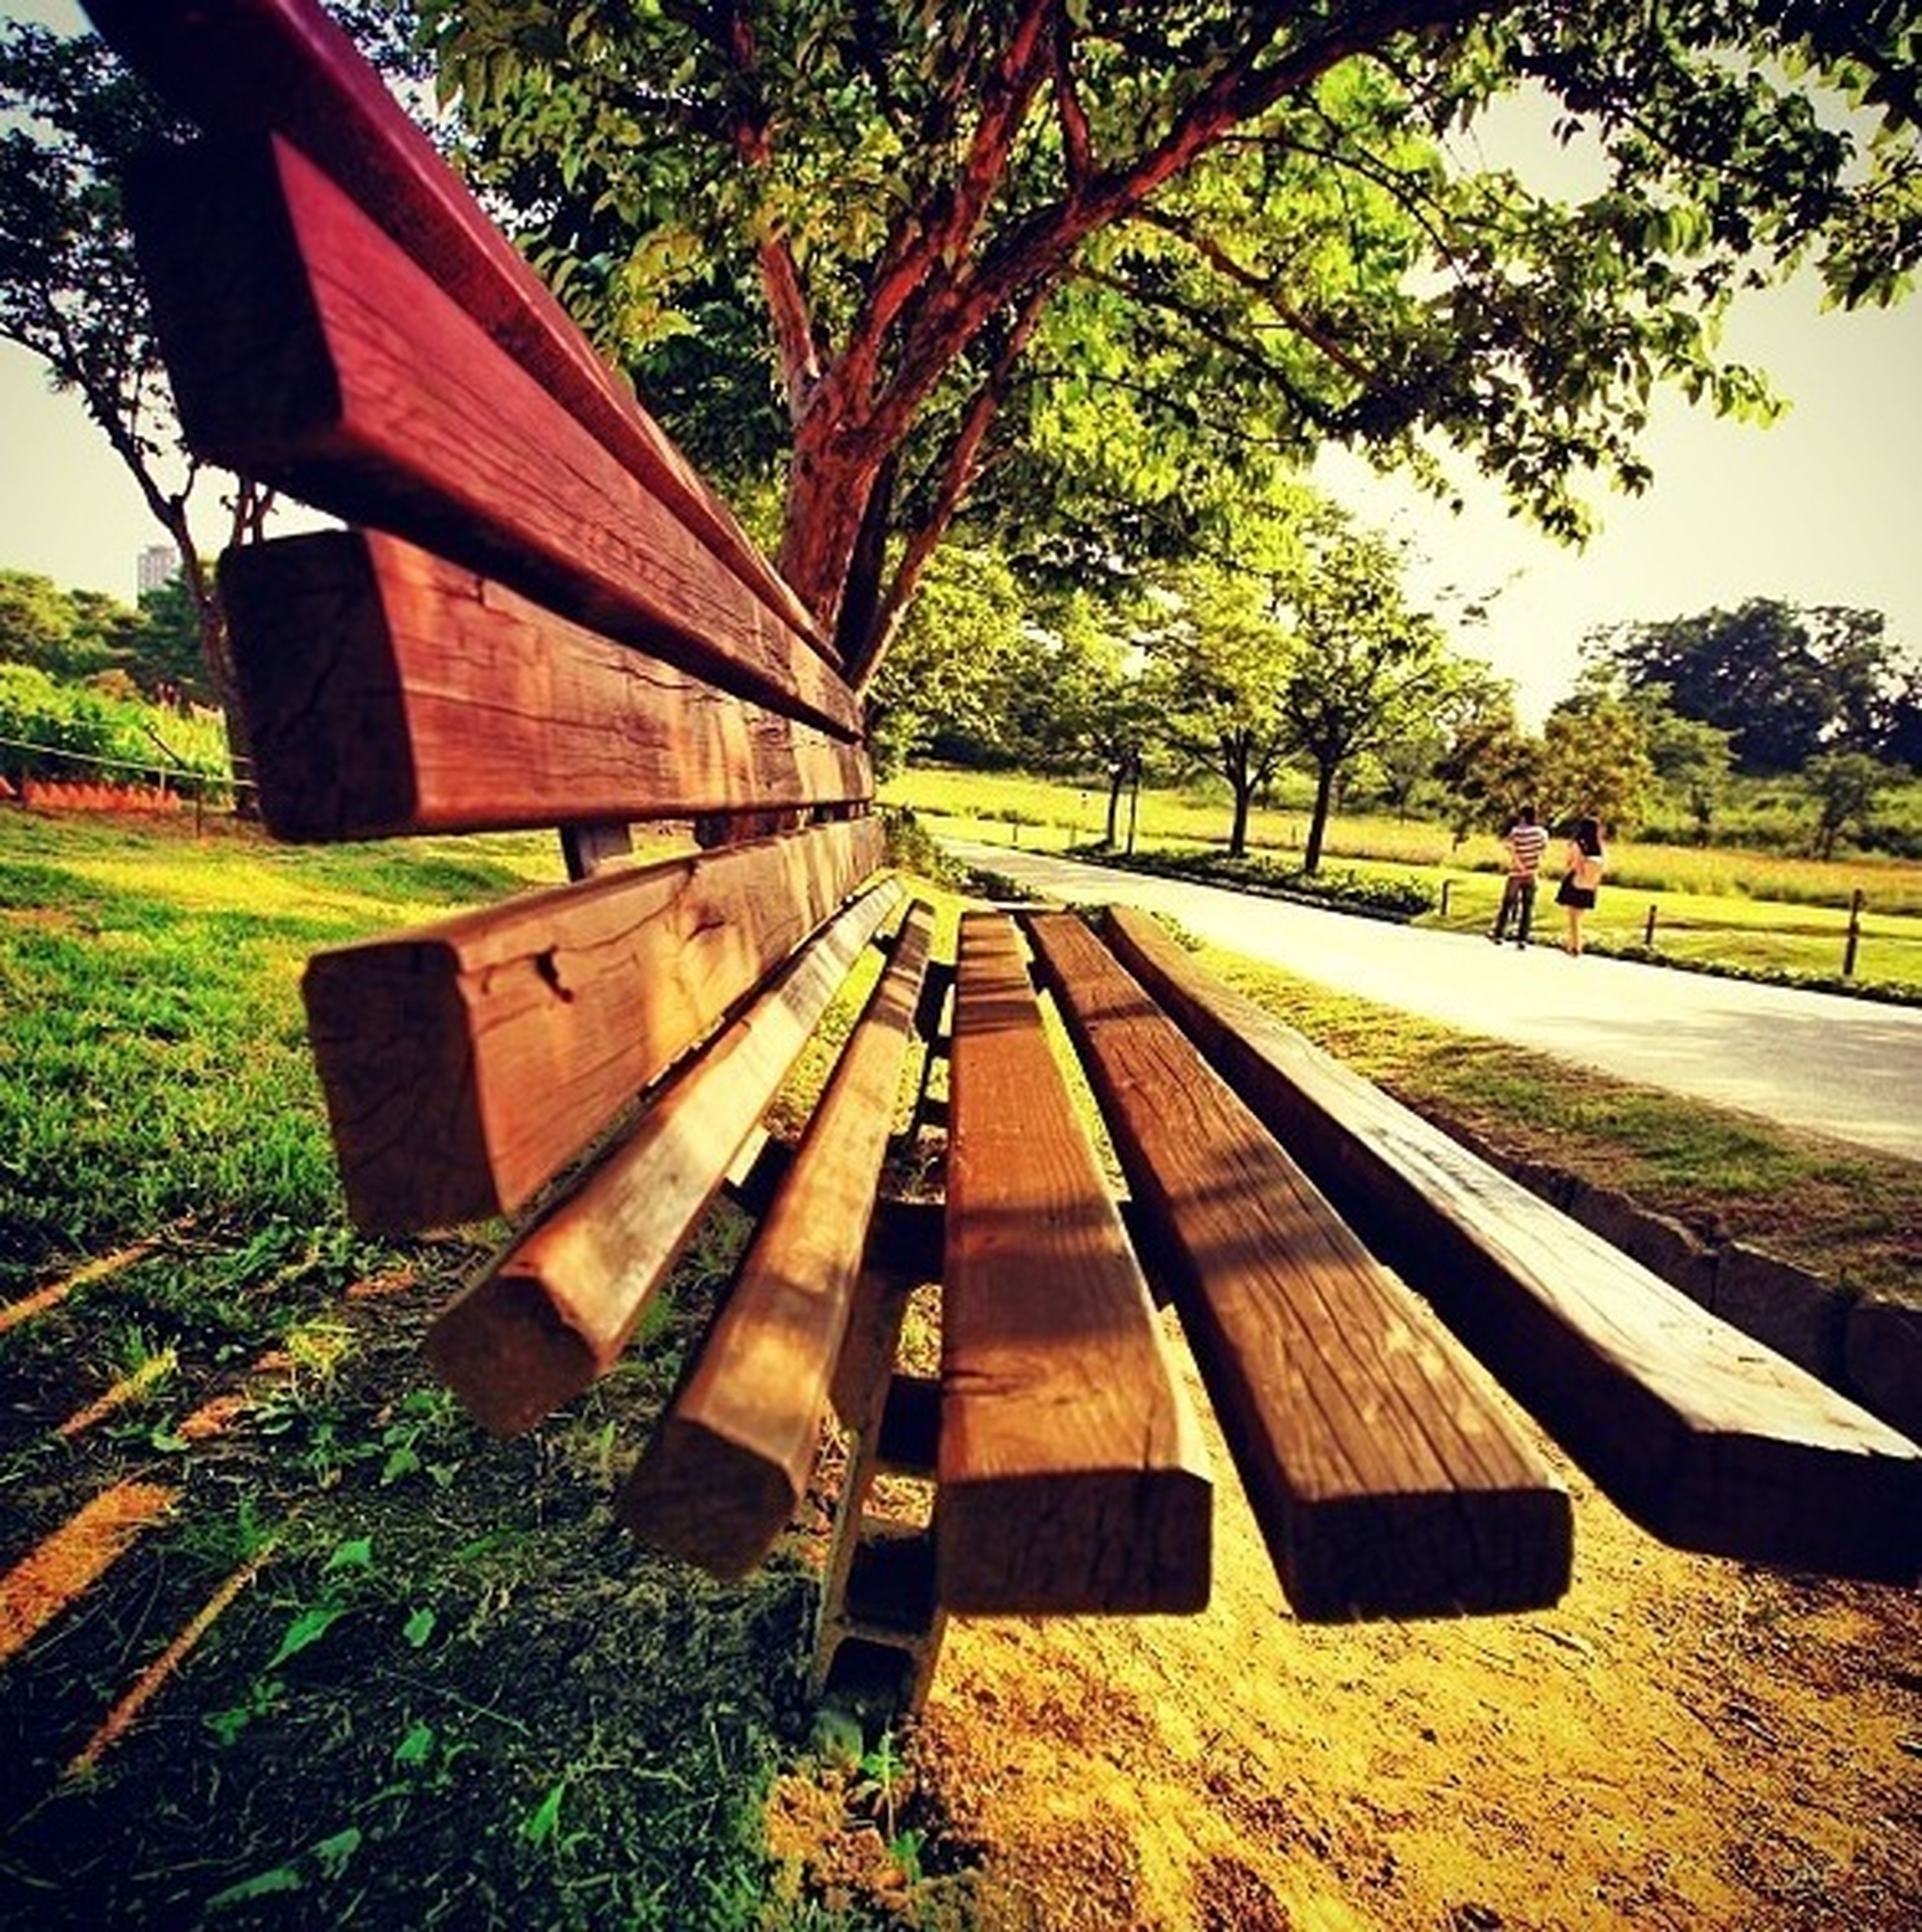 tree, bench, grass, empty, absence, park - man made space, wood - material, seat, sunlight, field, park bench, day, transportation, shadow, park, outdoors, no people, tranquility, wooden, nature